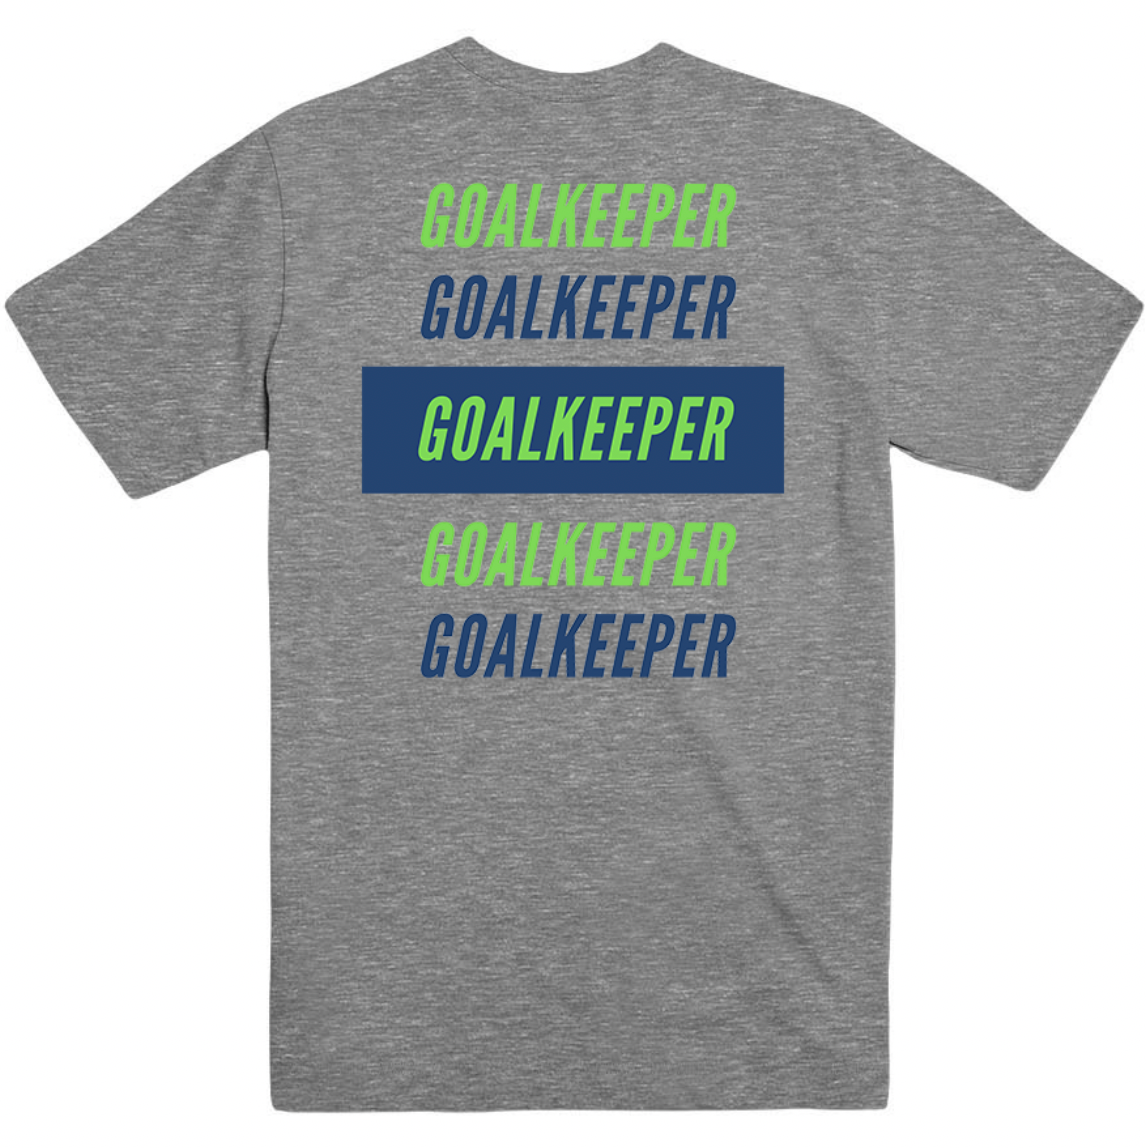 Goal Keeper Goalie Grey T-Shirt Soccer Girl Shirt